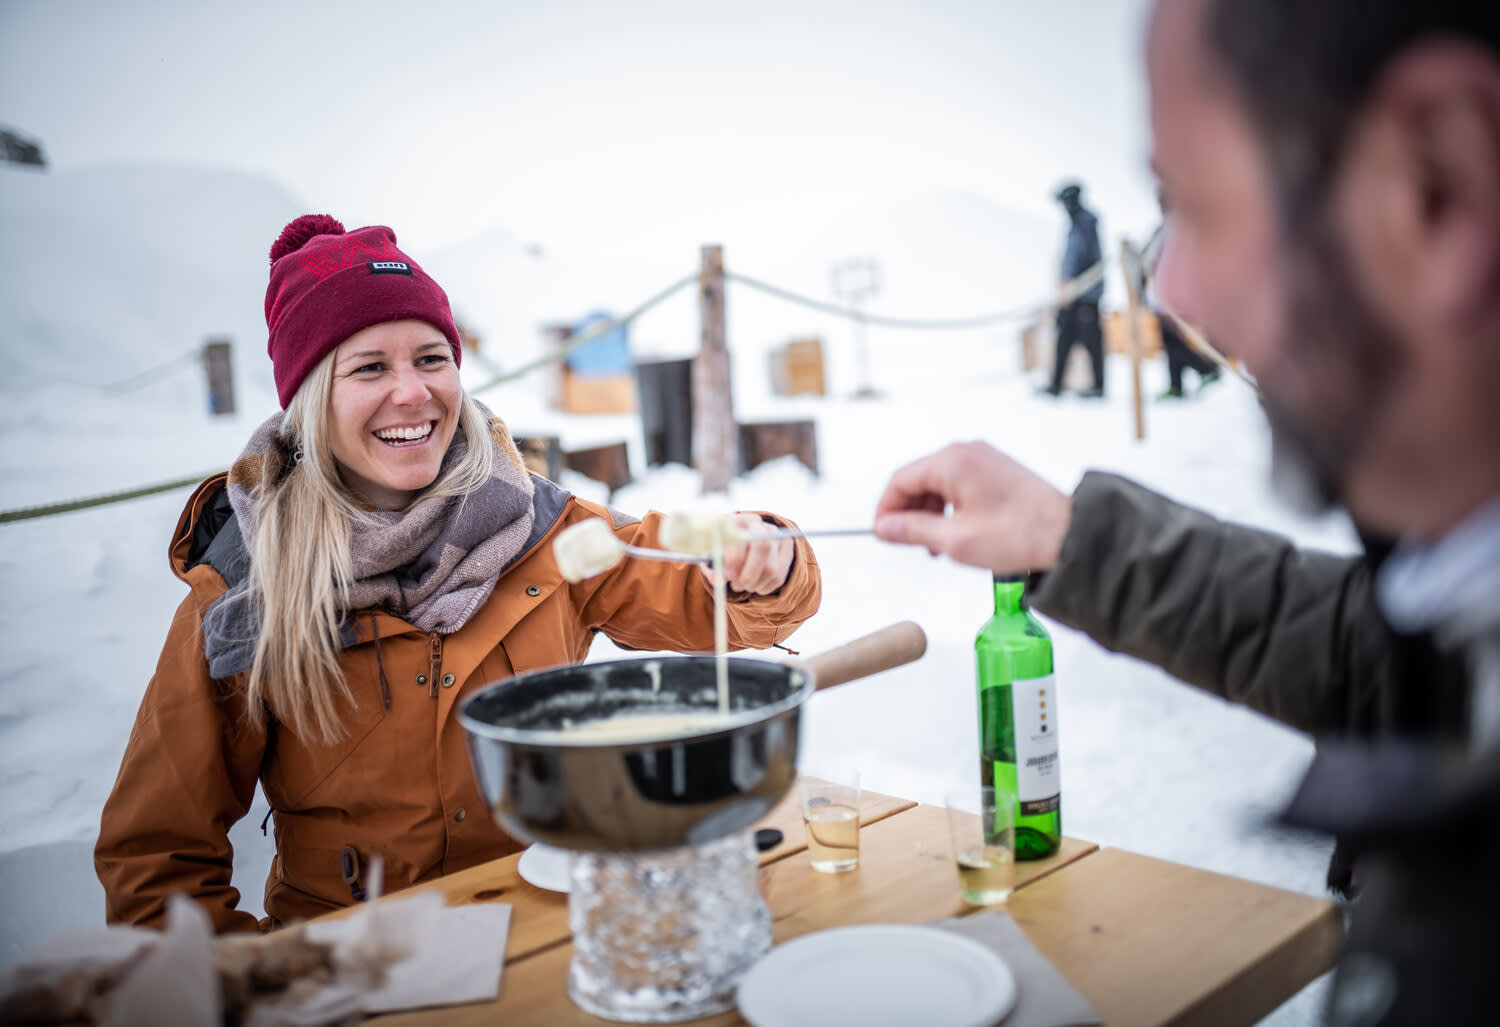 Fondue in the igloo village in front of the Matterhorn